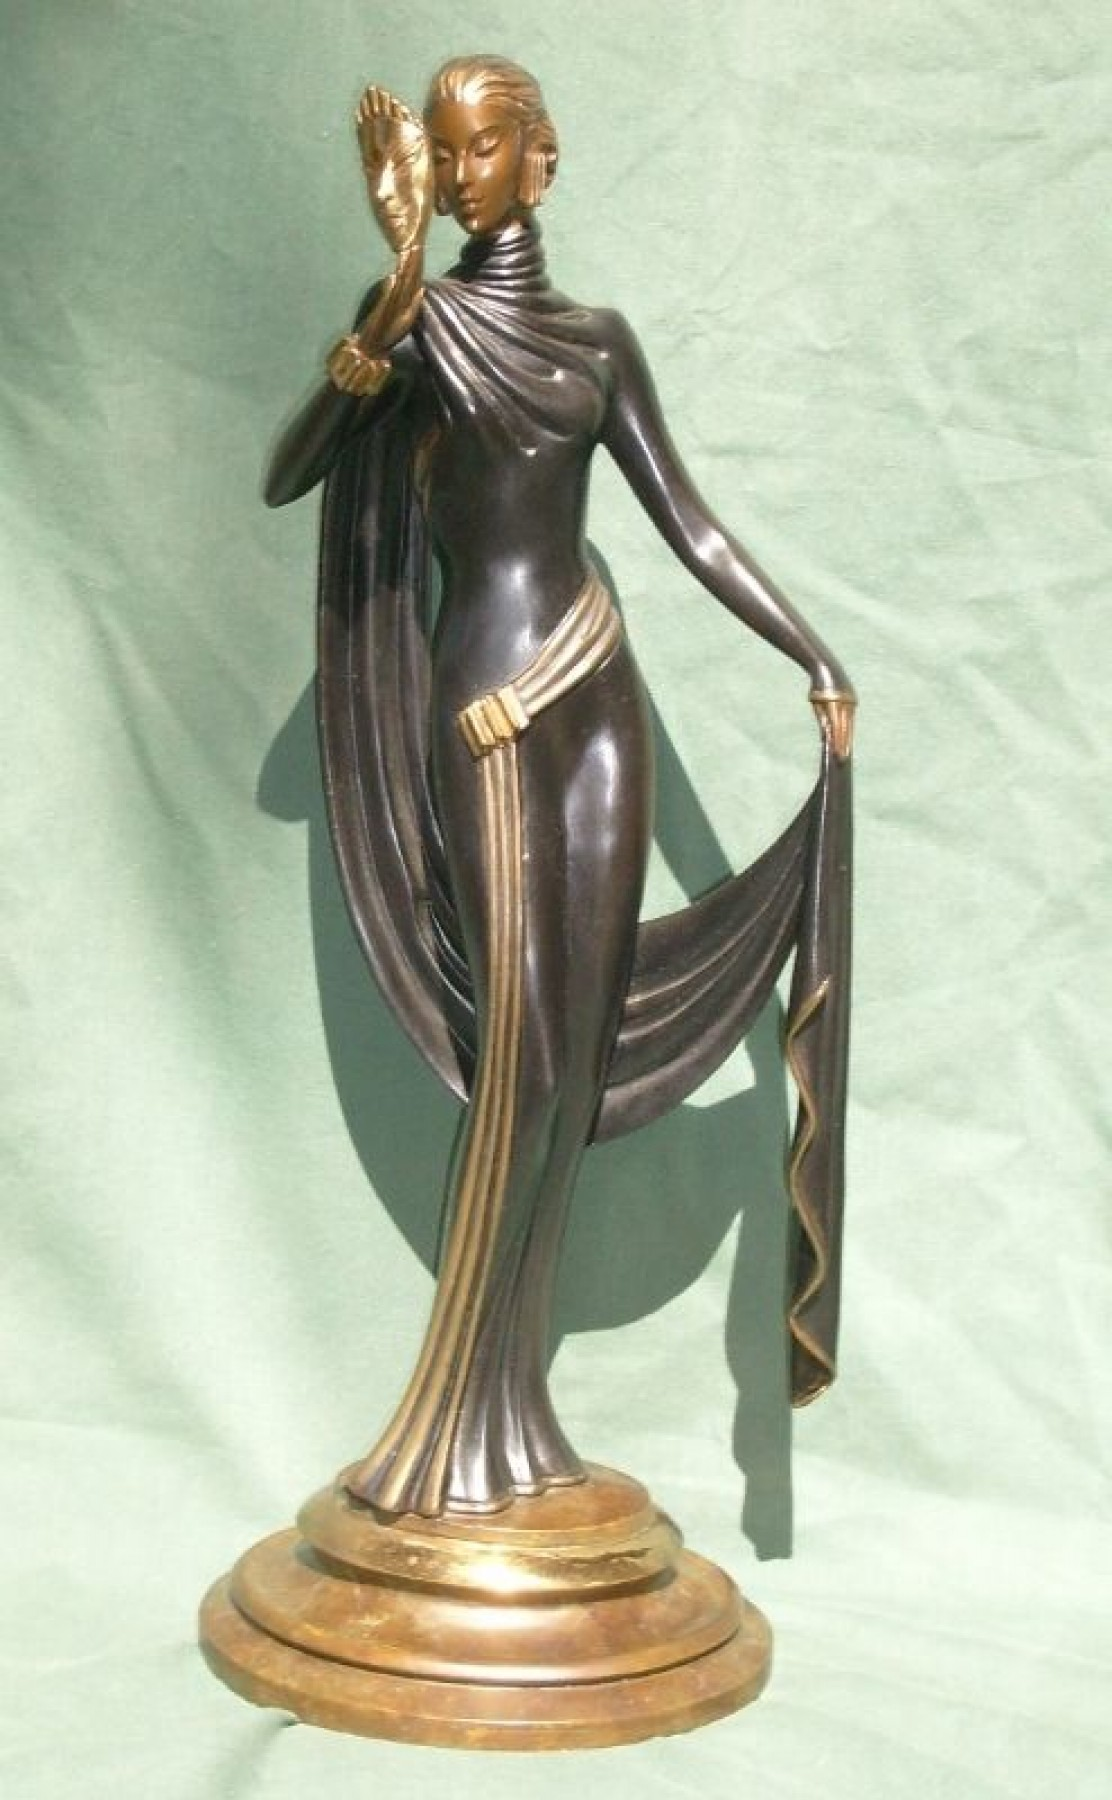 Le Masque Bronze Sculpture 1986 18 in